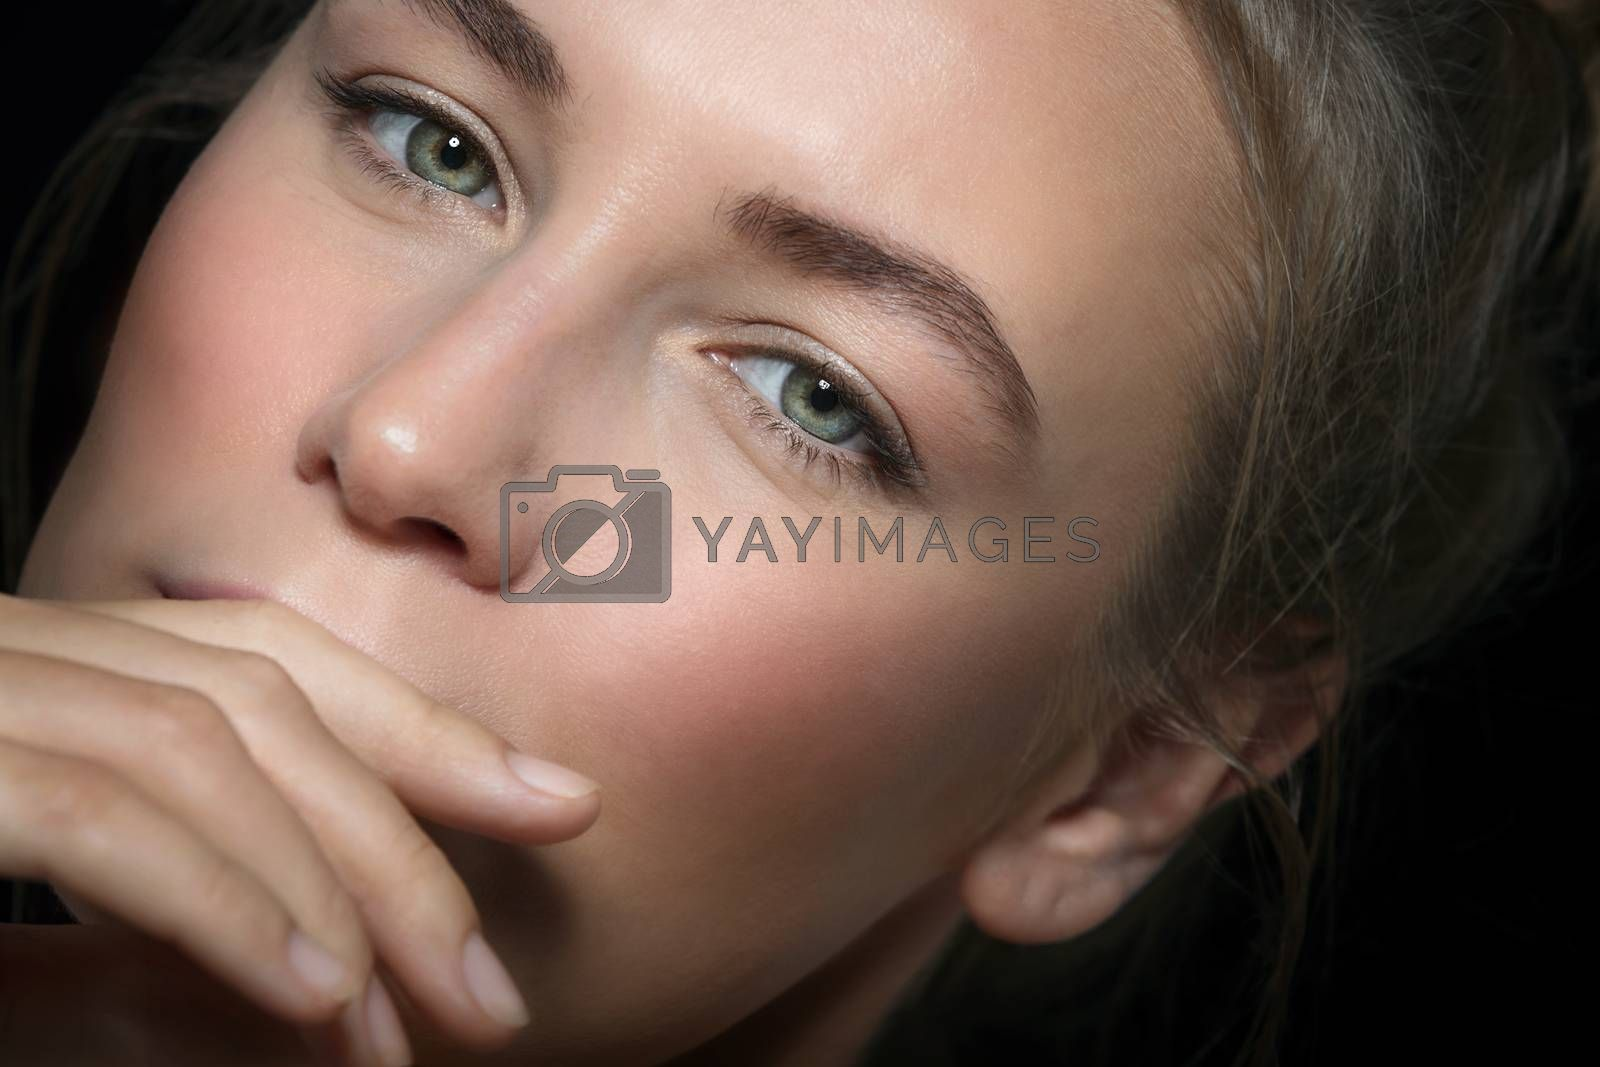 Closeup Authentic Portrait of a Nice Female with Perfect Skin. Natural Makeup. Fashion Look. Beauty and Style Concept.